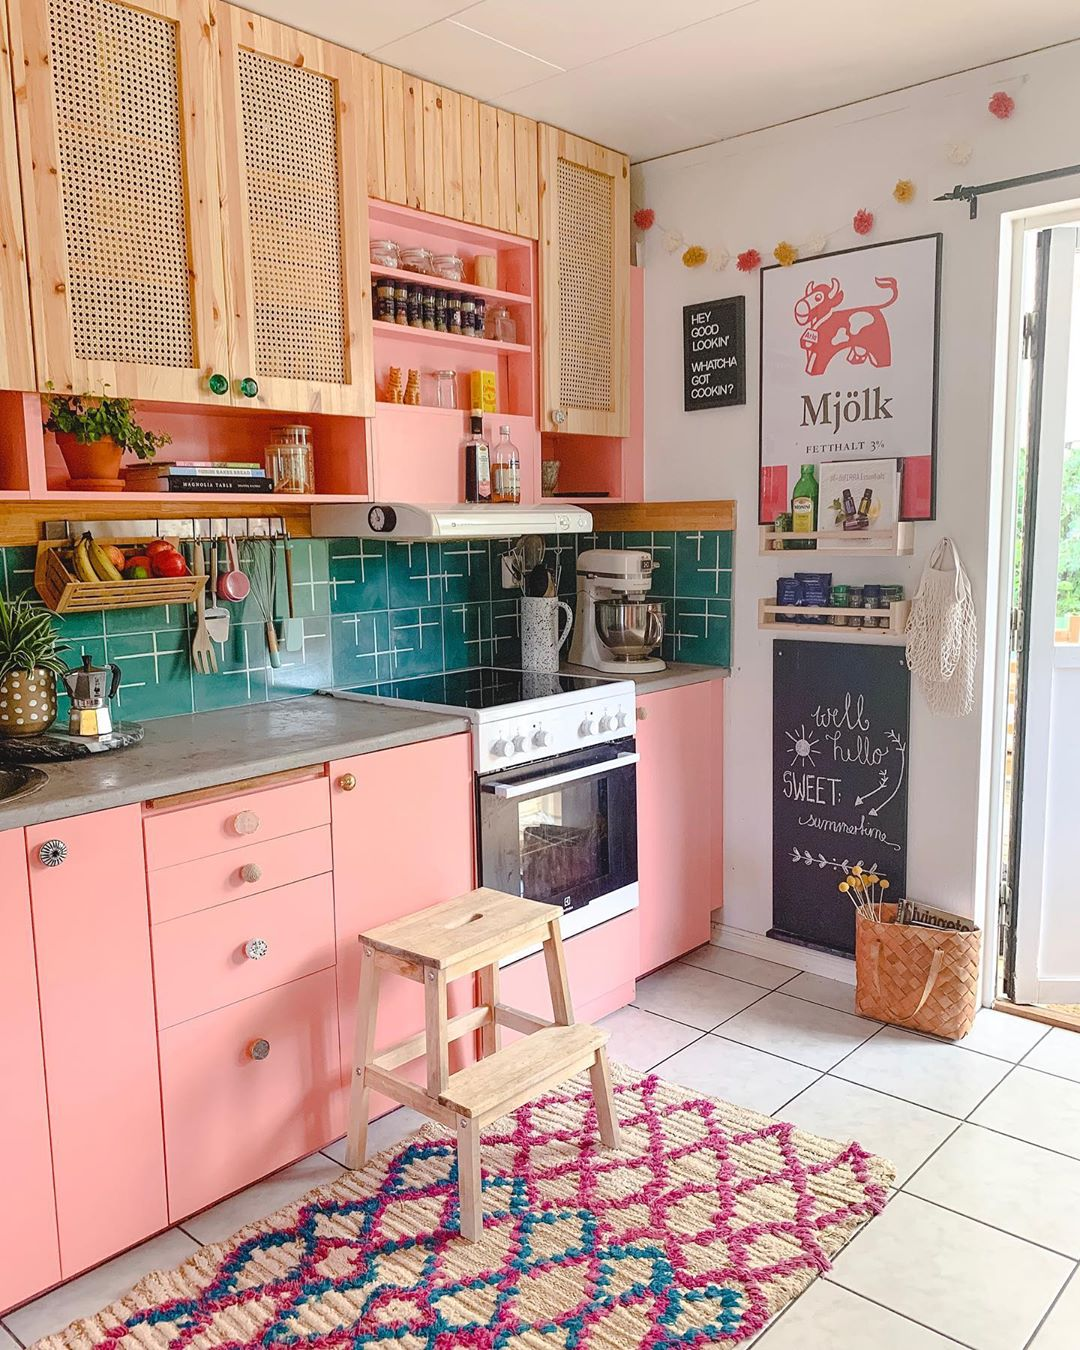 8 Colorful Kitchen Cabinets Flea Market Finds Home And Garden Decorating Ideas By Expert Interior Decorators